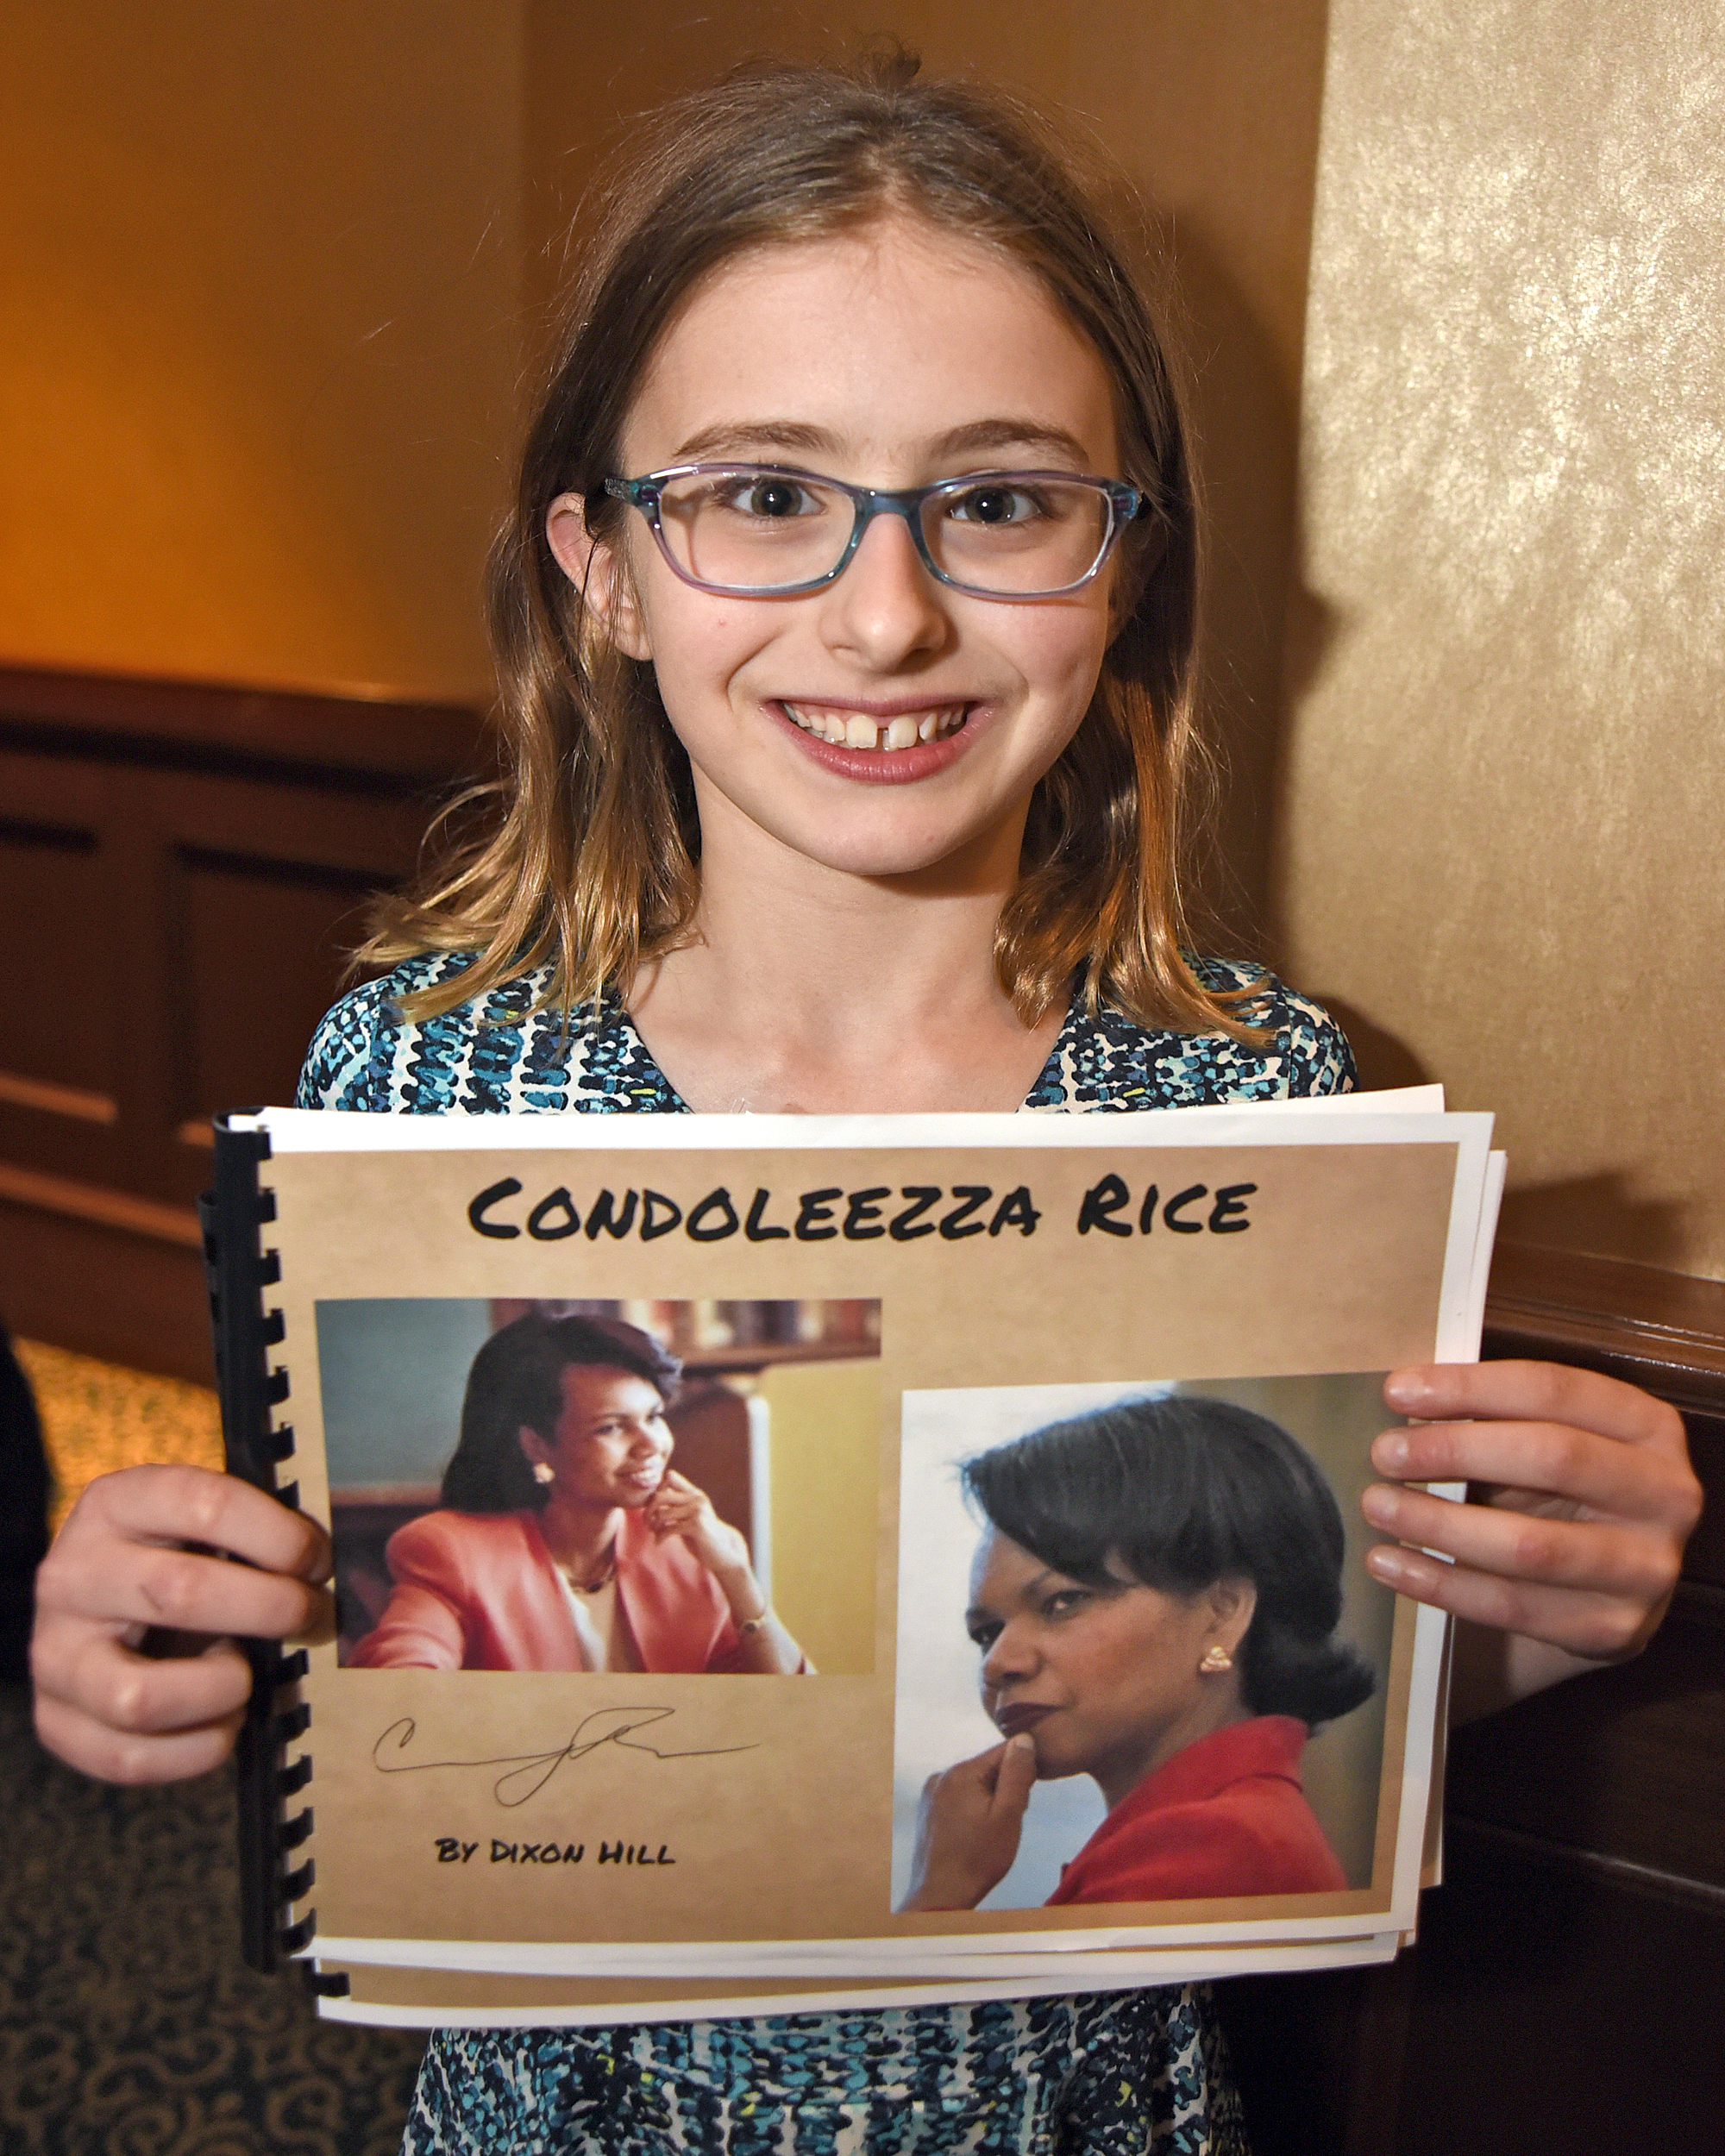 Rising HB fifth-grader Dixon Hill reflects on meeting a